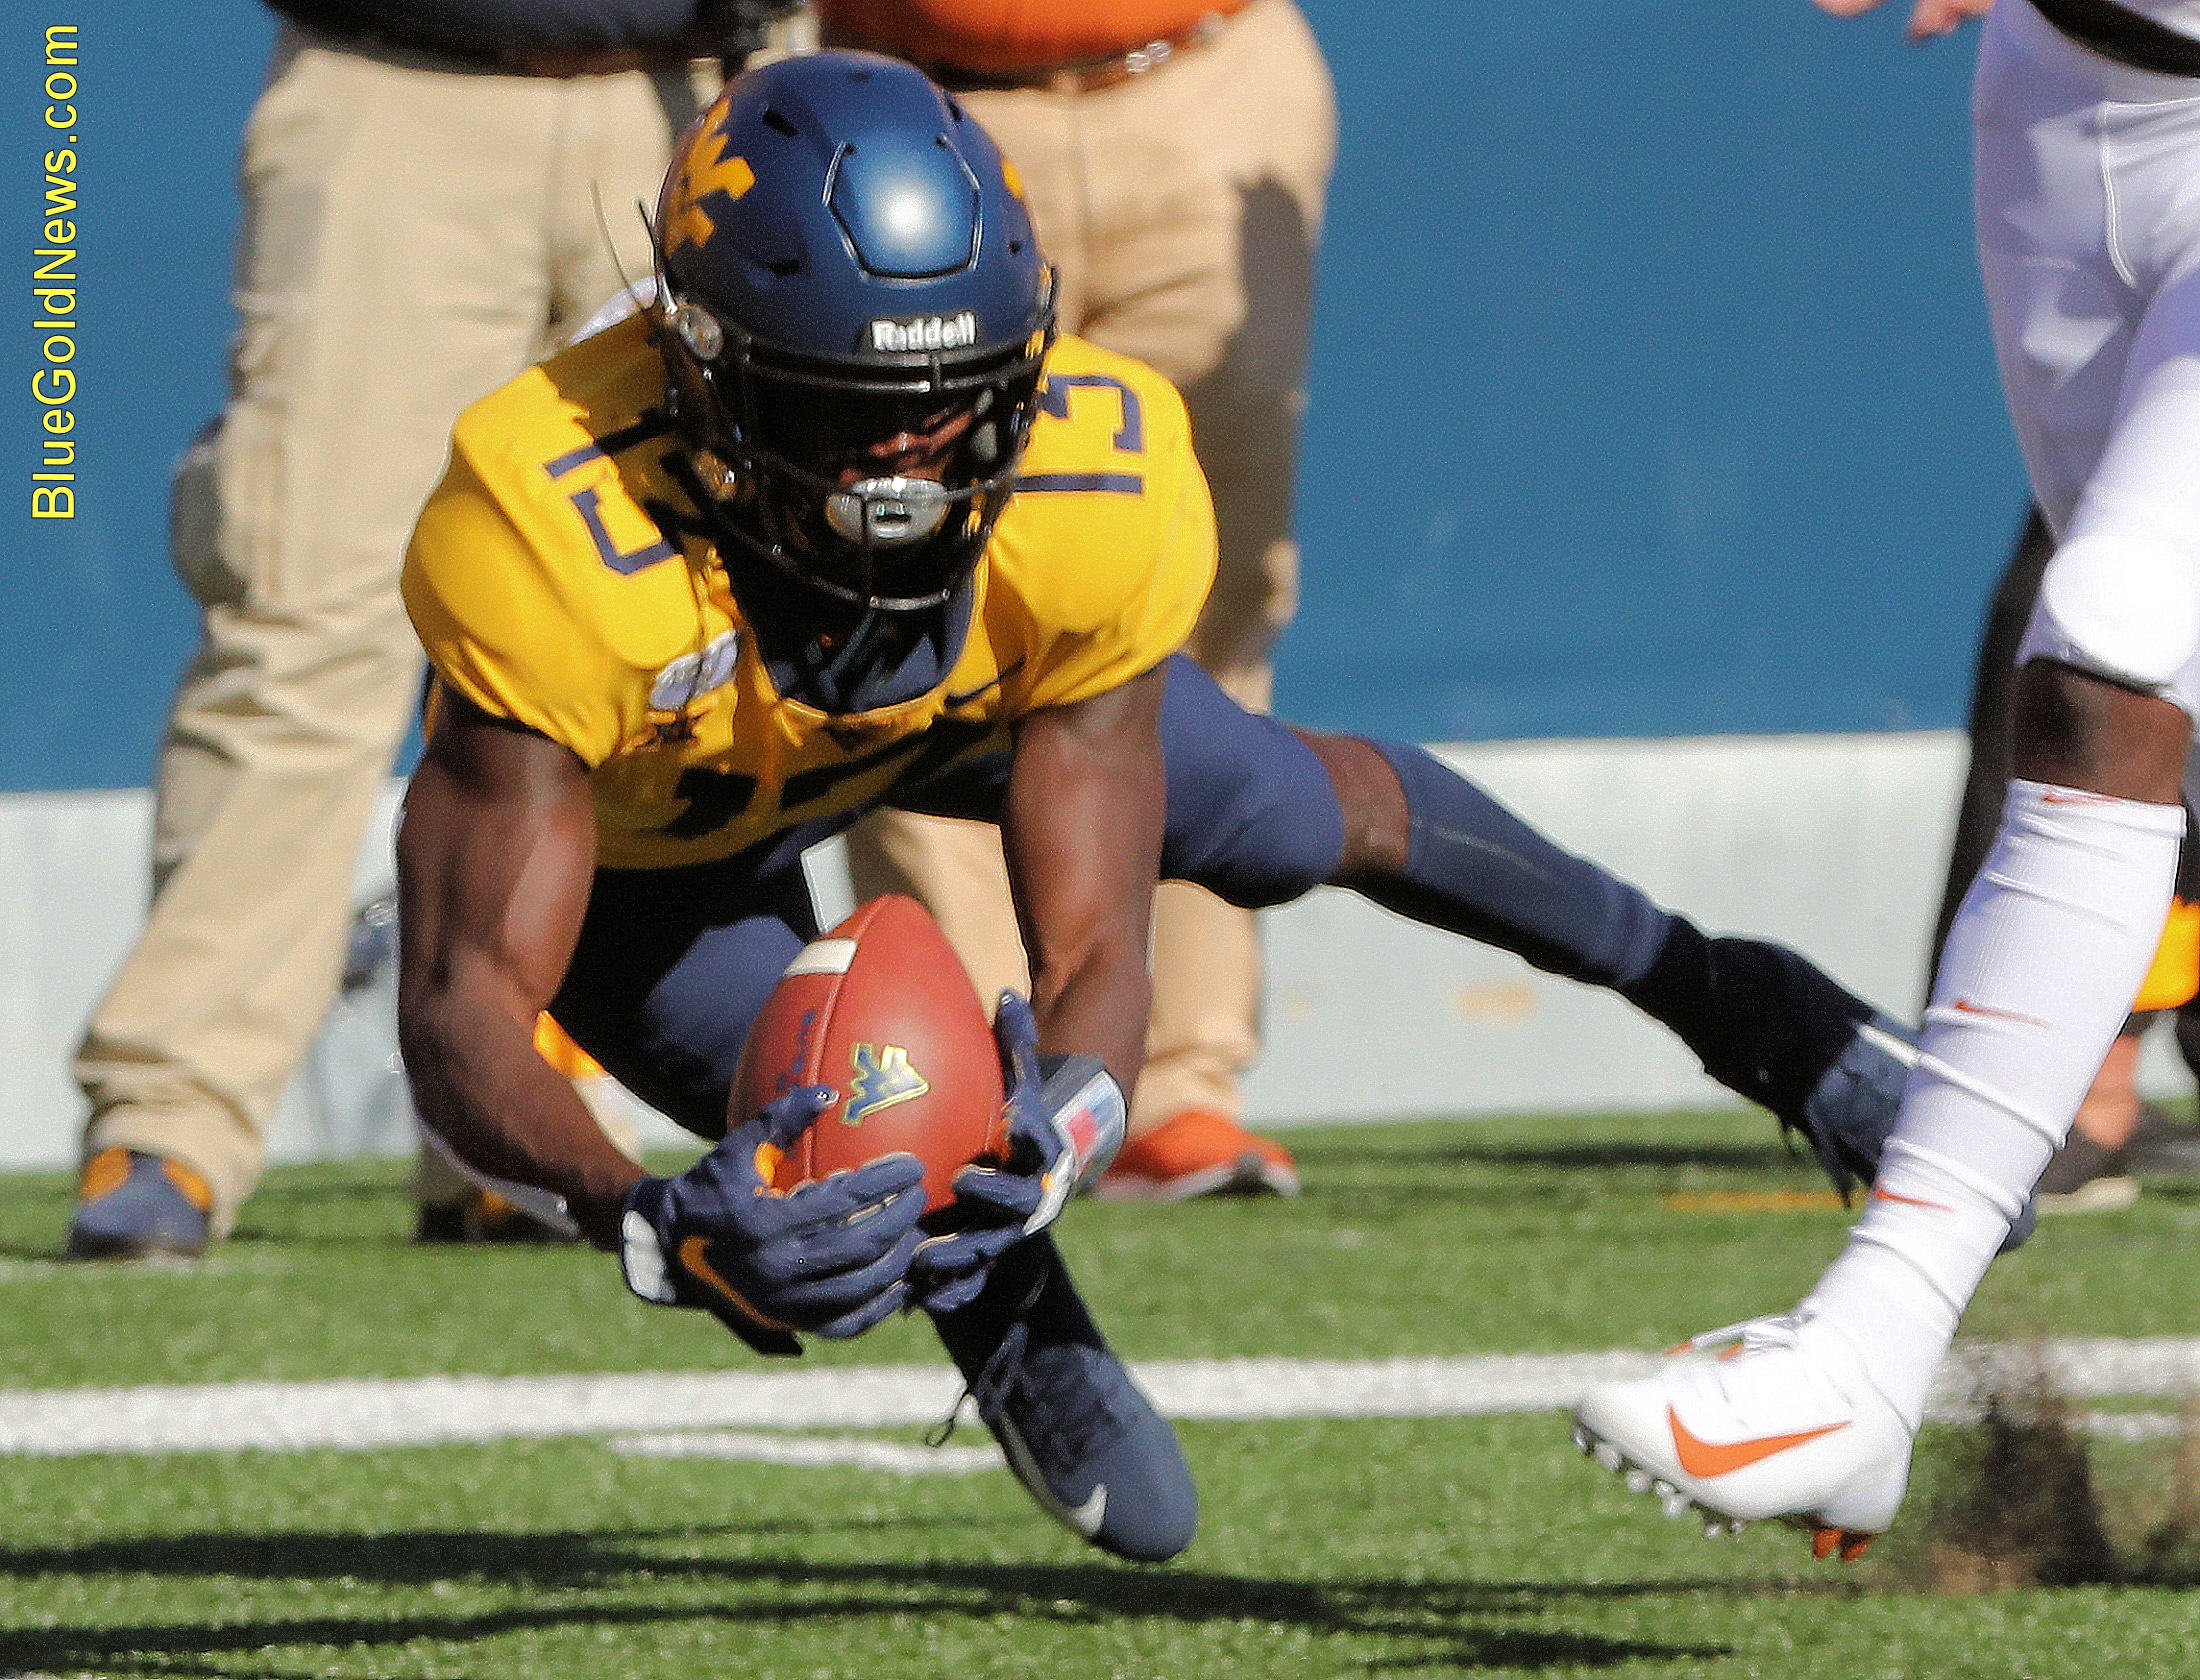 West Virginia wide receiver Sam James dives for the ball on a touchdown reception